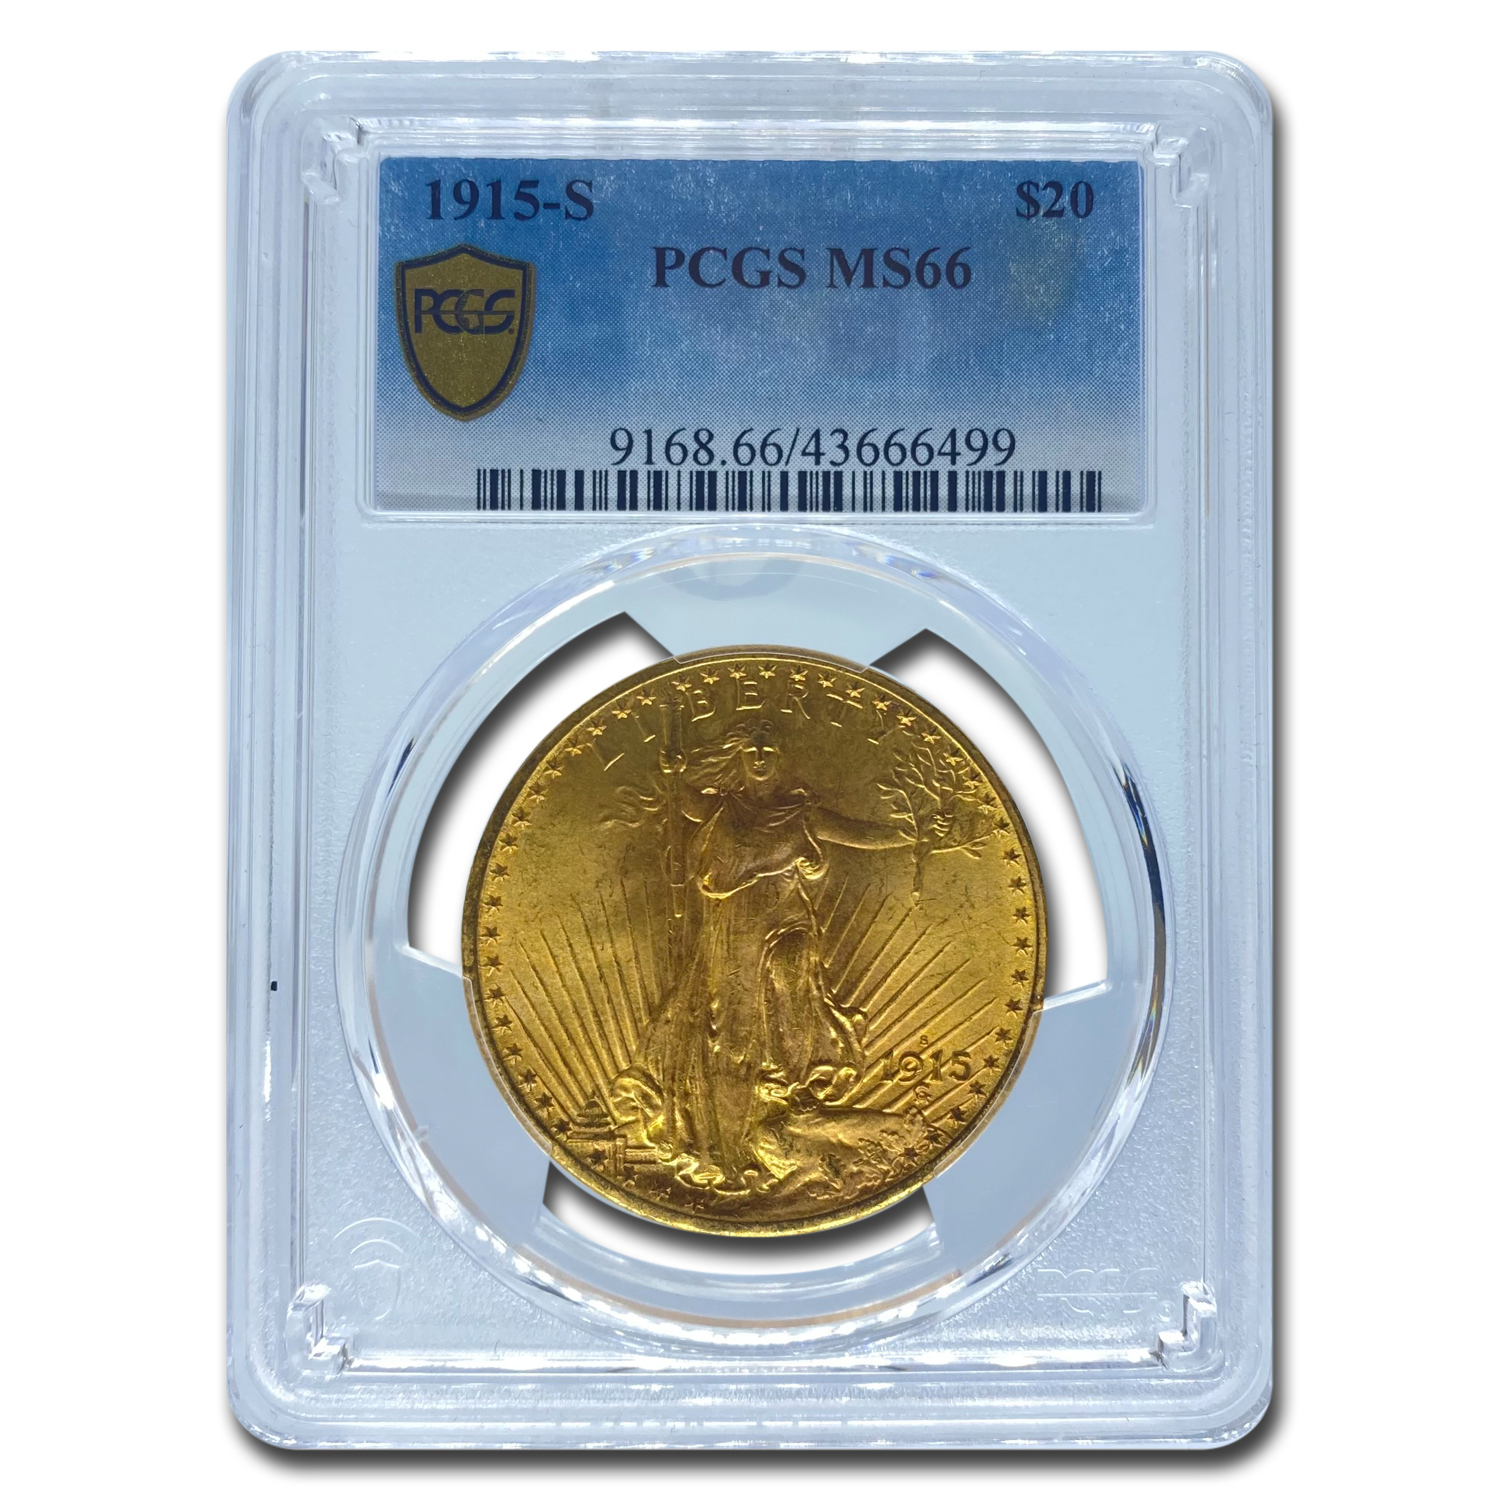 1915-S $20 St. Gaudens Gold Double Eagle - MS-66 PCGS